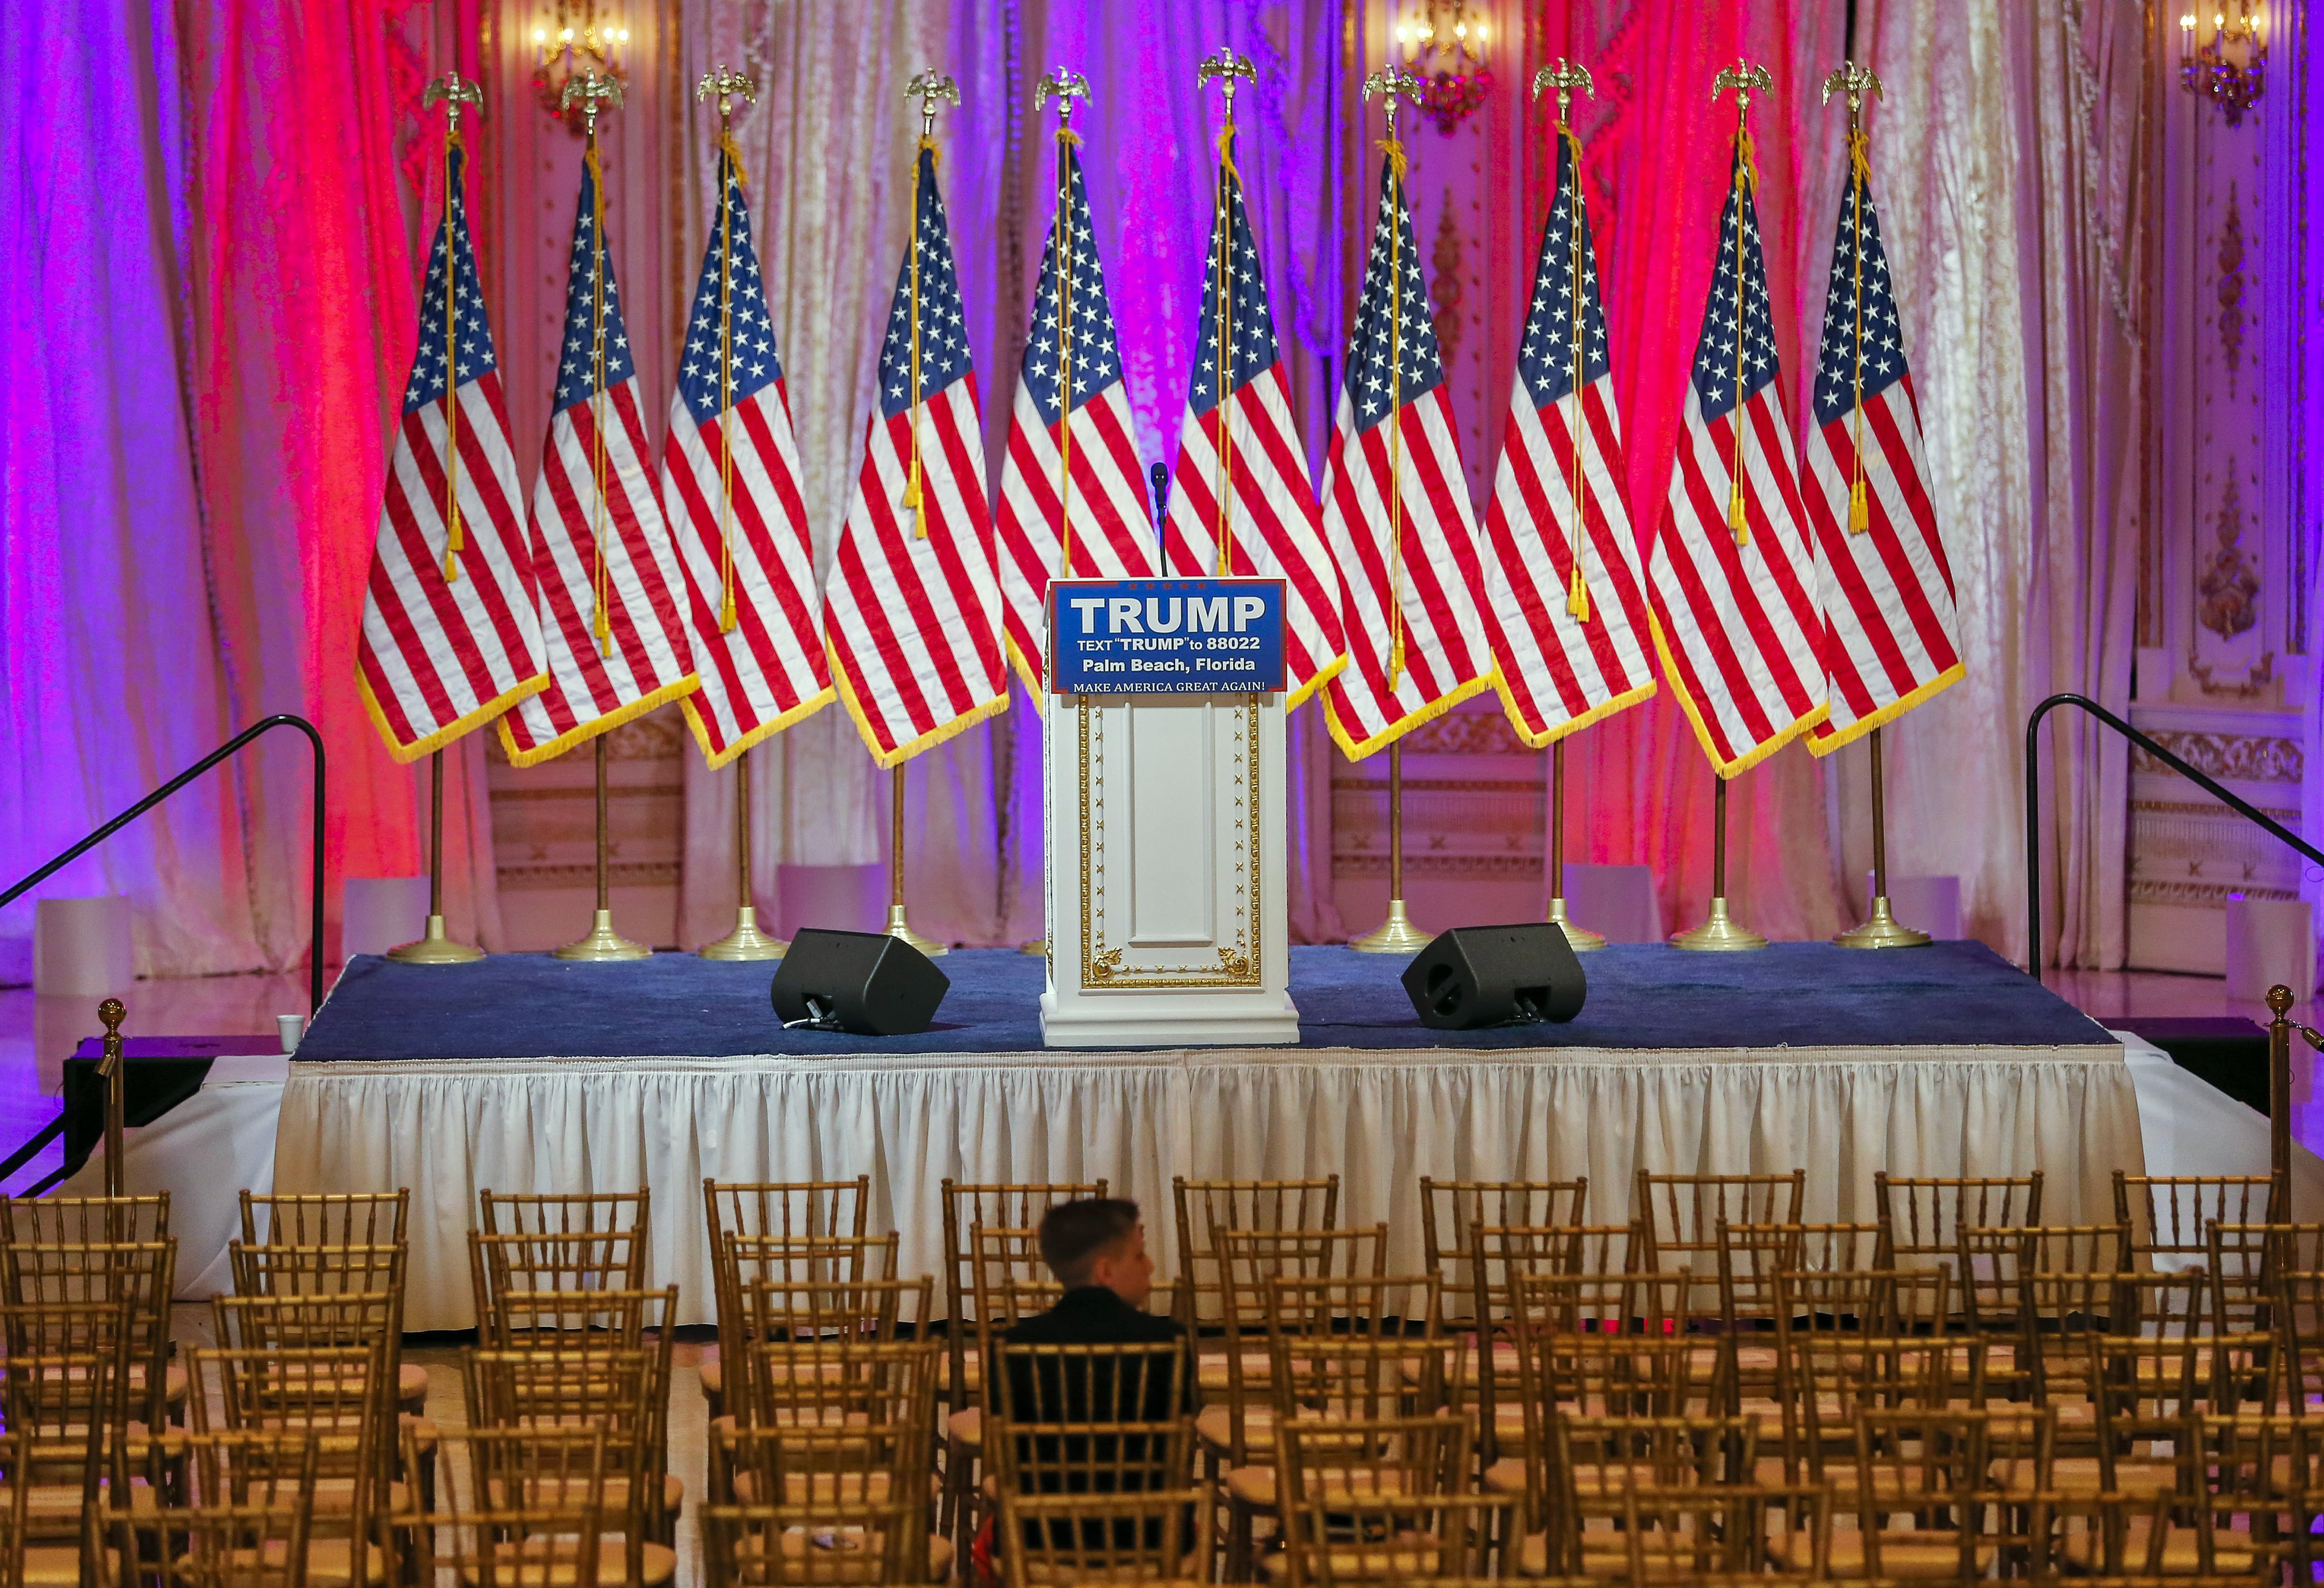 A boy sits near the stage where Republican presidential candidate Donald Trump is scheduled to participate in a news conference inside a ballroom at the Mar-a-Lago Club in Palm Beach, Fla. on March 15, 2016.